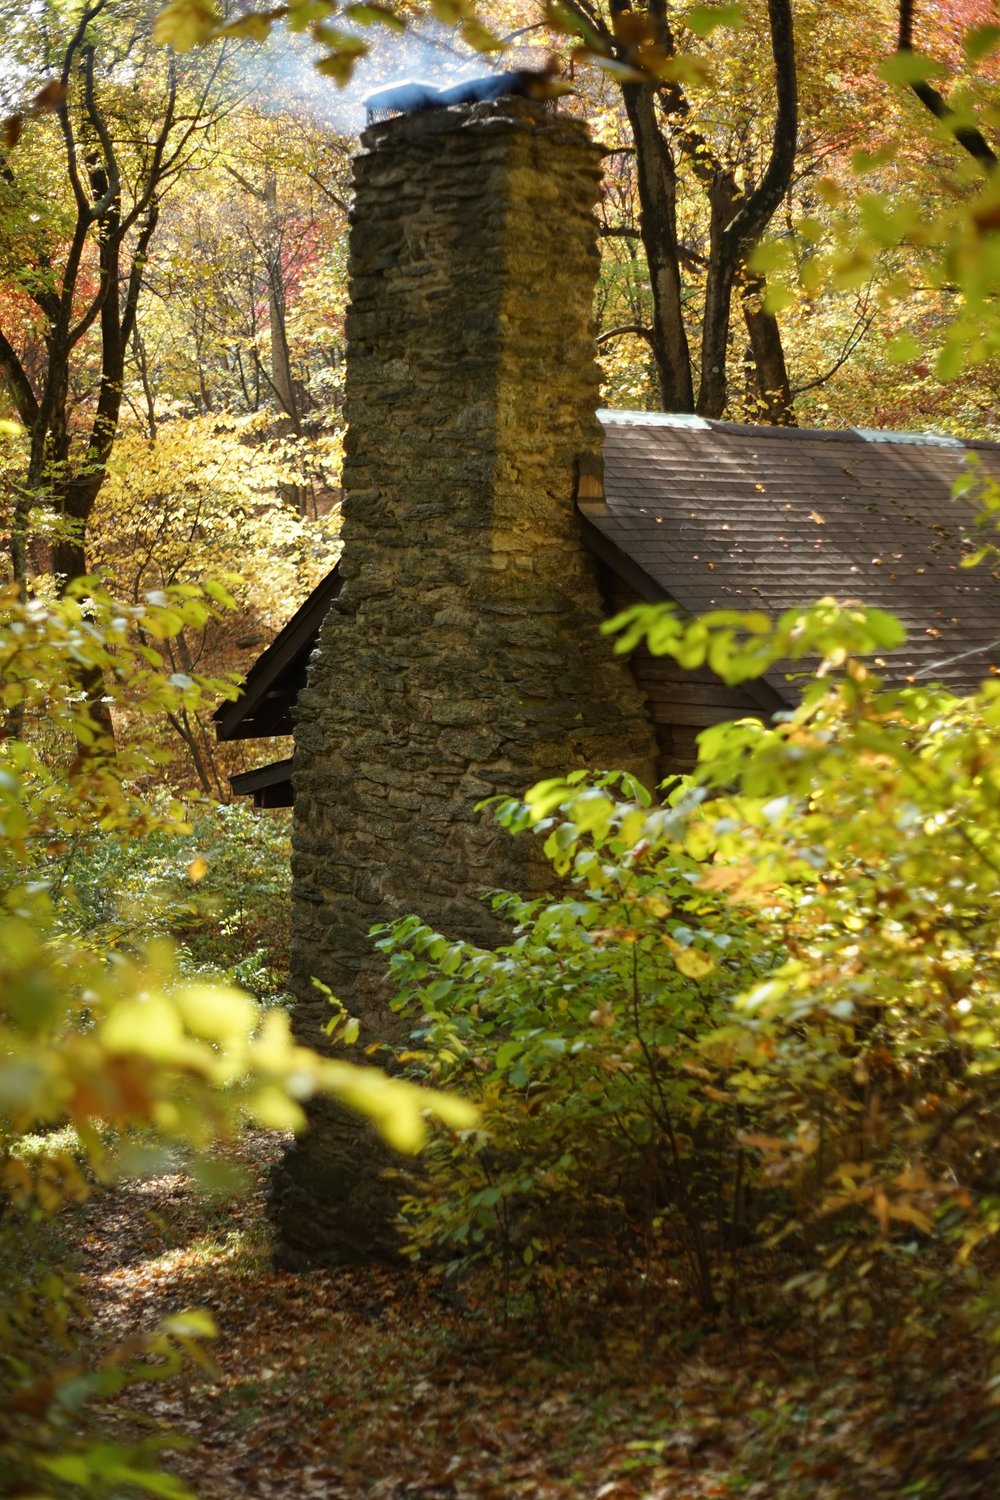 We did get to run into a neat little cabin (Jones Mountain Cabin) while on our trek. Not creepy at all. October 25, 2015